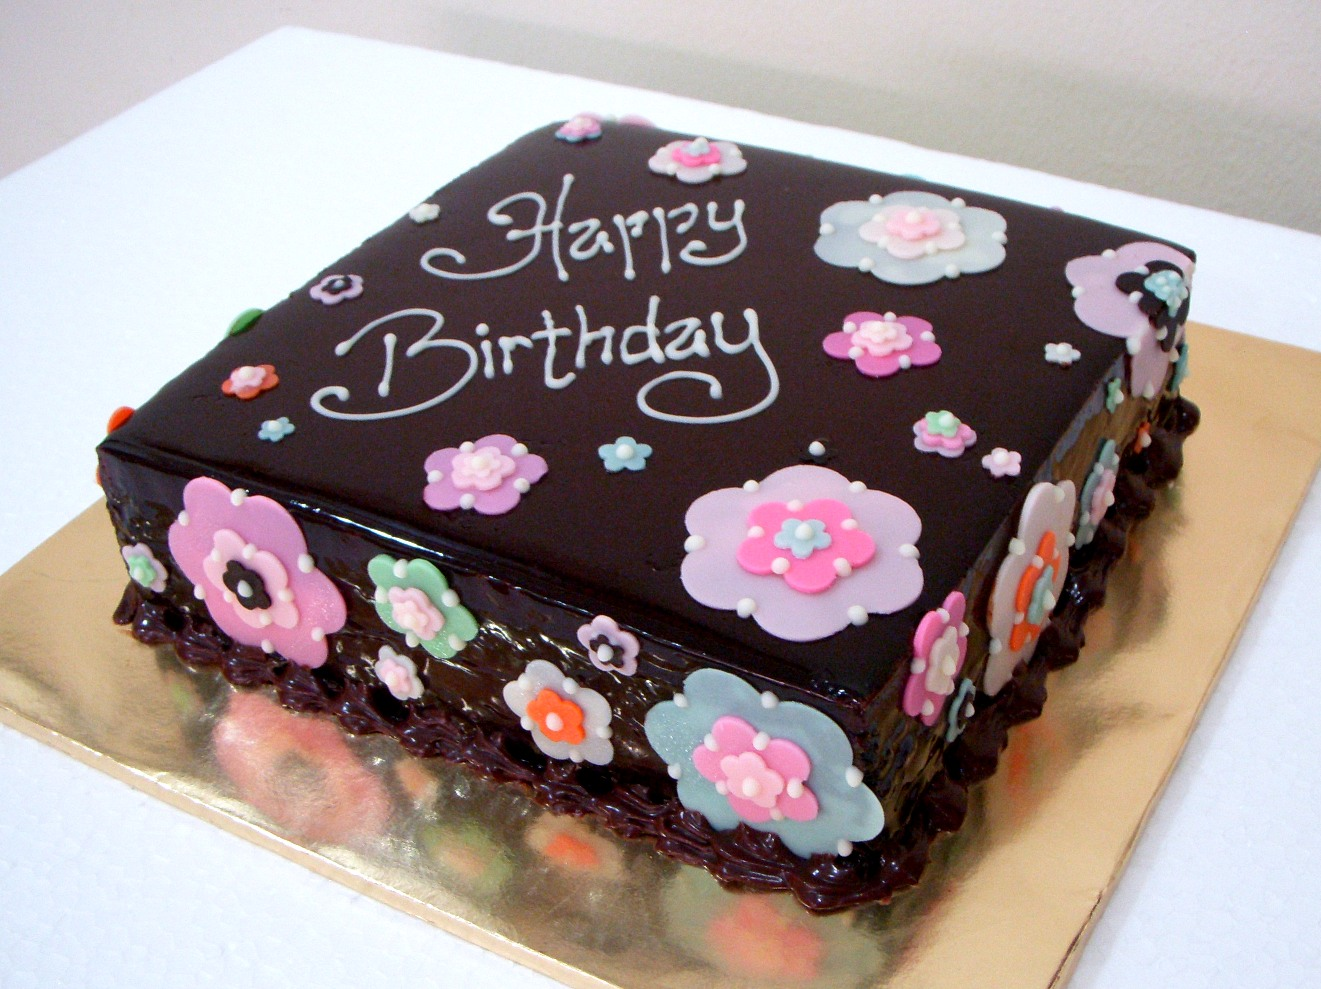 Bearylicious cakes chocolate mousse cake with chocolate flowers this birthday cake is the chocolate hazelnut mousse cake covered with dark chocolate glaze the floral decorations are made with chocolate izmirmasajfo